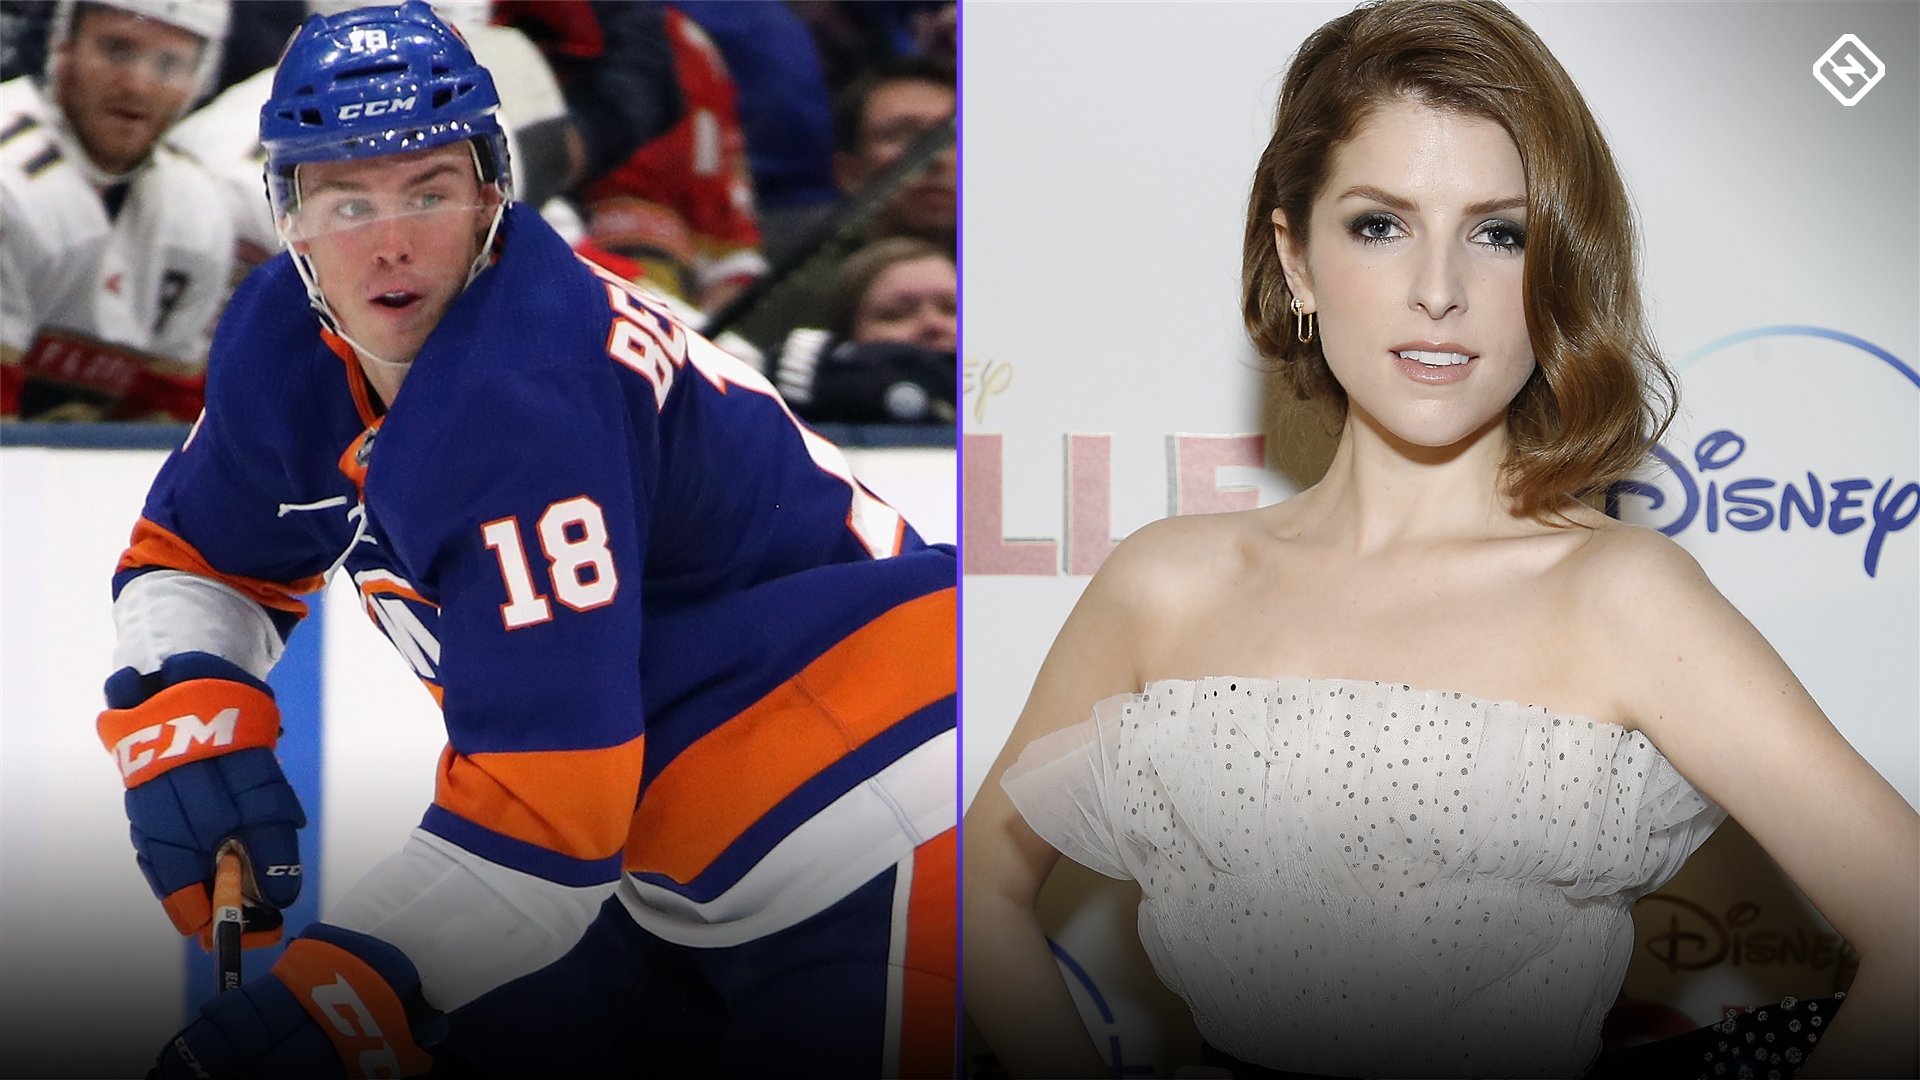 New York Islanders' Anthony Beauvillier shoots his shot with Anna Kendrick — and Twitter plays wingman